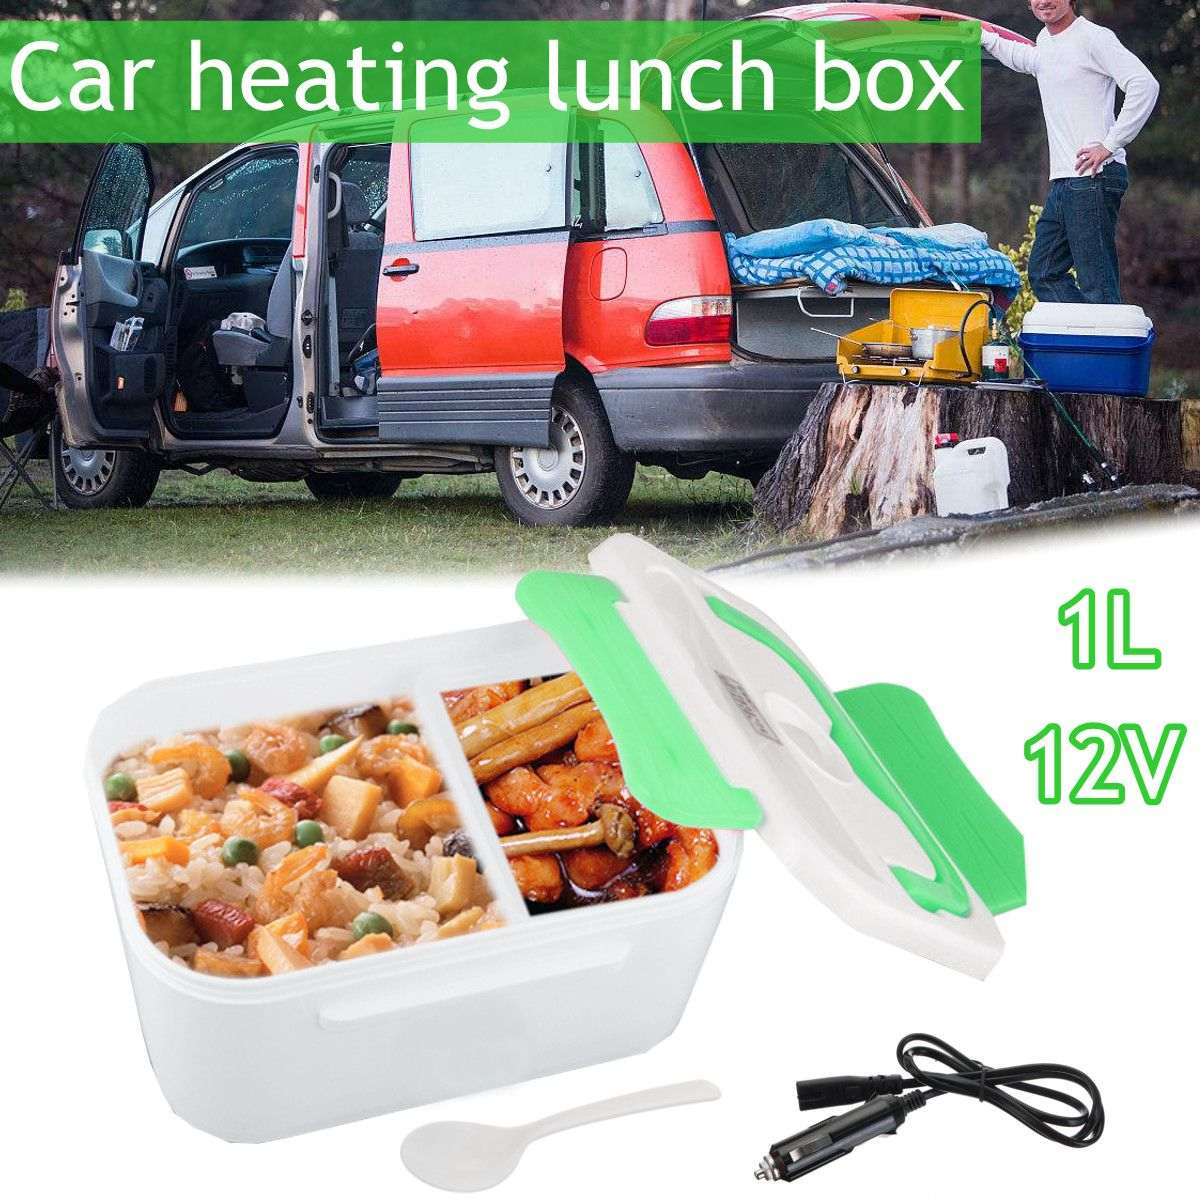 12V 1L Electric Heating Lunch Box Bento Food Insulation Heater Removable Container Warmer with Spoon multi function electric lunch box stainless steel tank household pluggable electric heating insulation lunch box